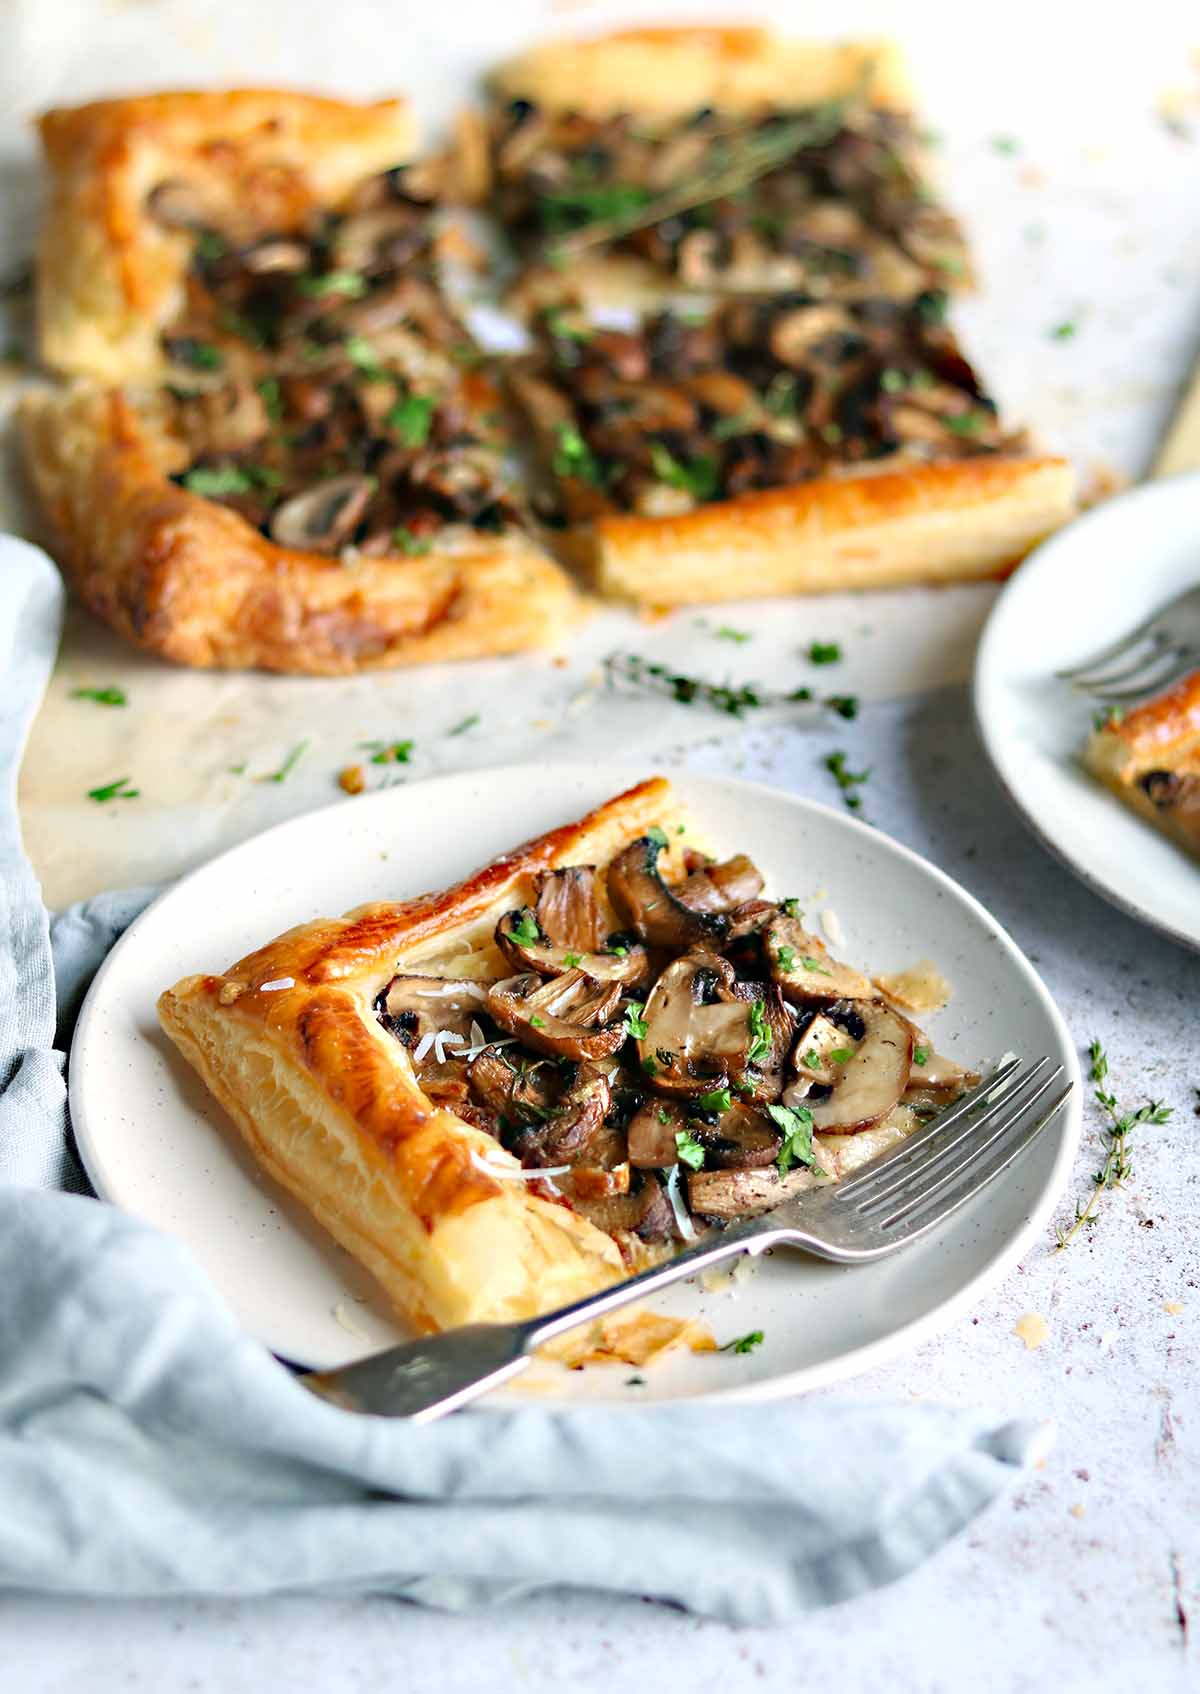 Chestnut mushrooms on a puff pastry bed, with parsley and thyme and shavings of italian hard cheese.